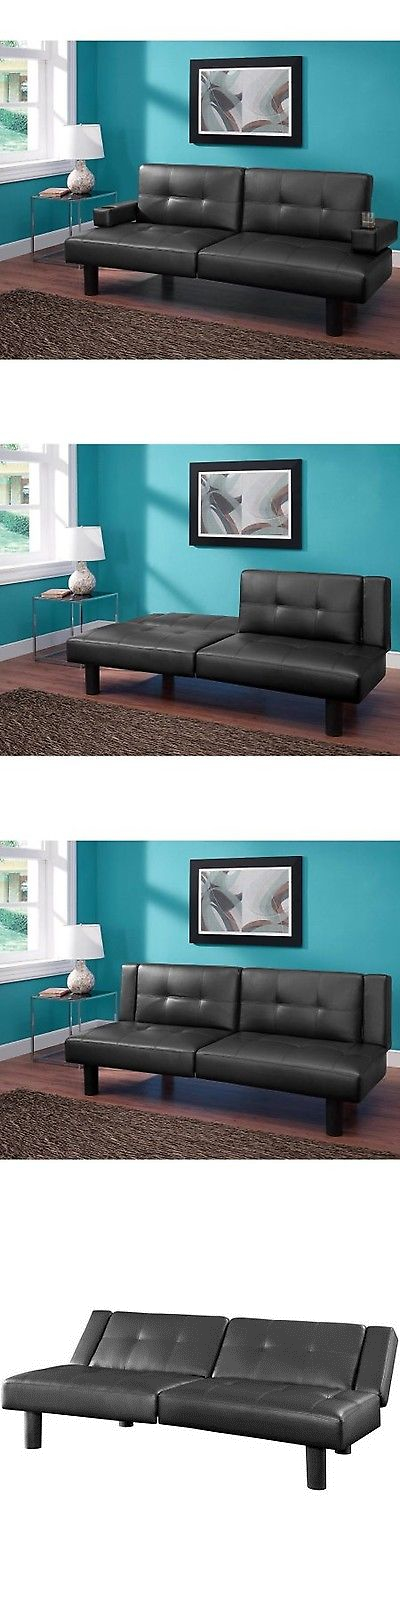 Futons Frames And Covers 131579 Mainstays Connectrix Futon Black Twin Size Sleeper Bed Sofa Couch